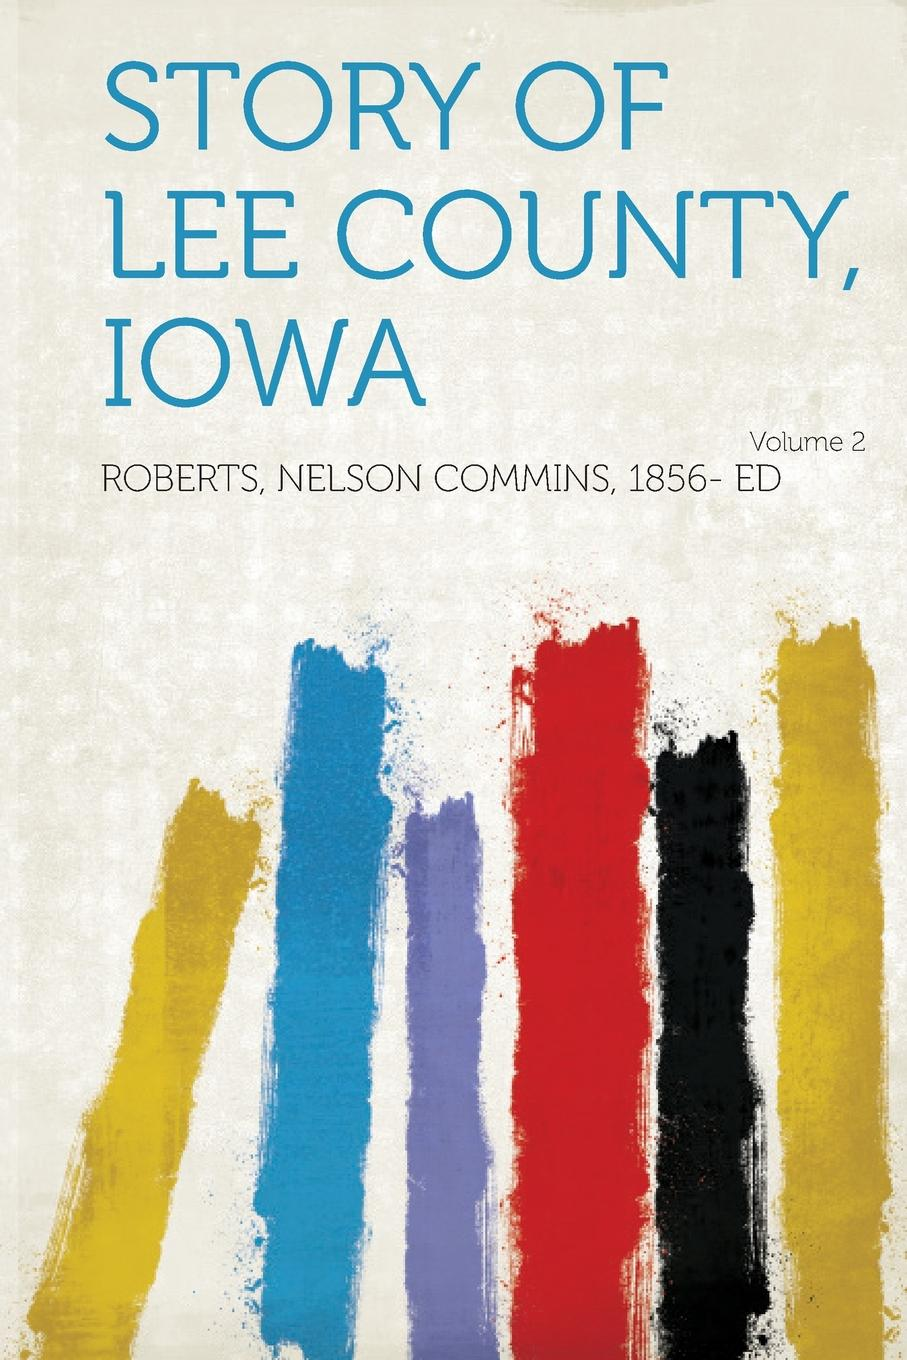 Roberts Nelson Commins 1856- Ed Story of Lee County, Iowa Volume 2